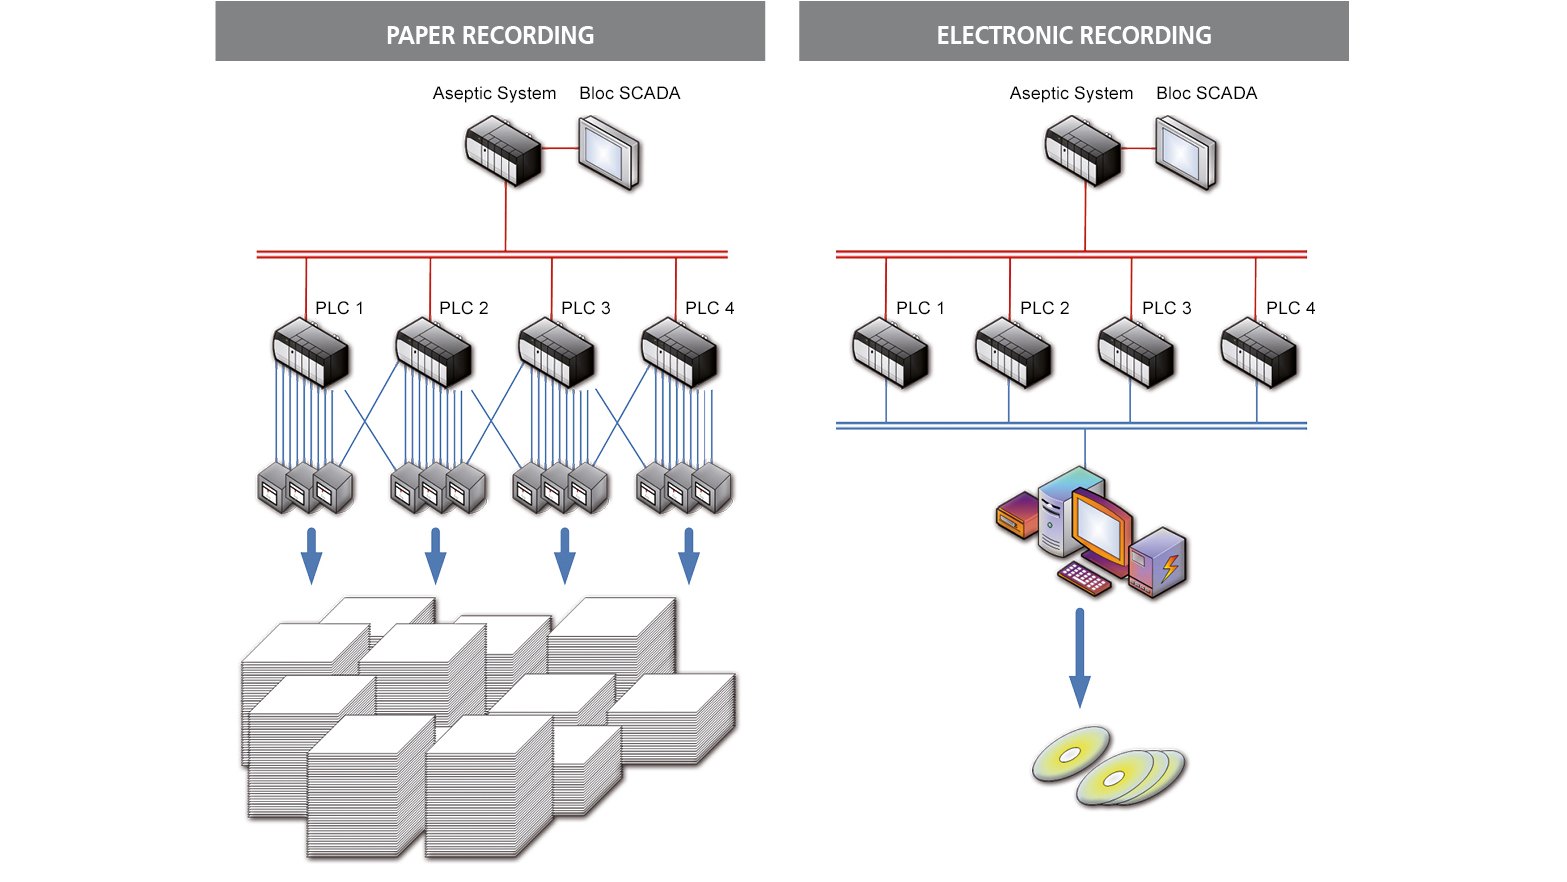 Paper Recording vs Electronic Recording